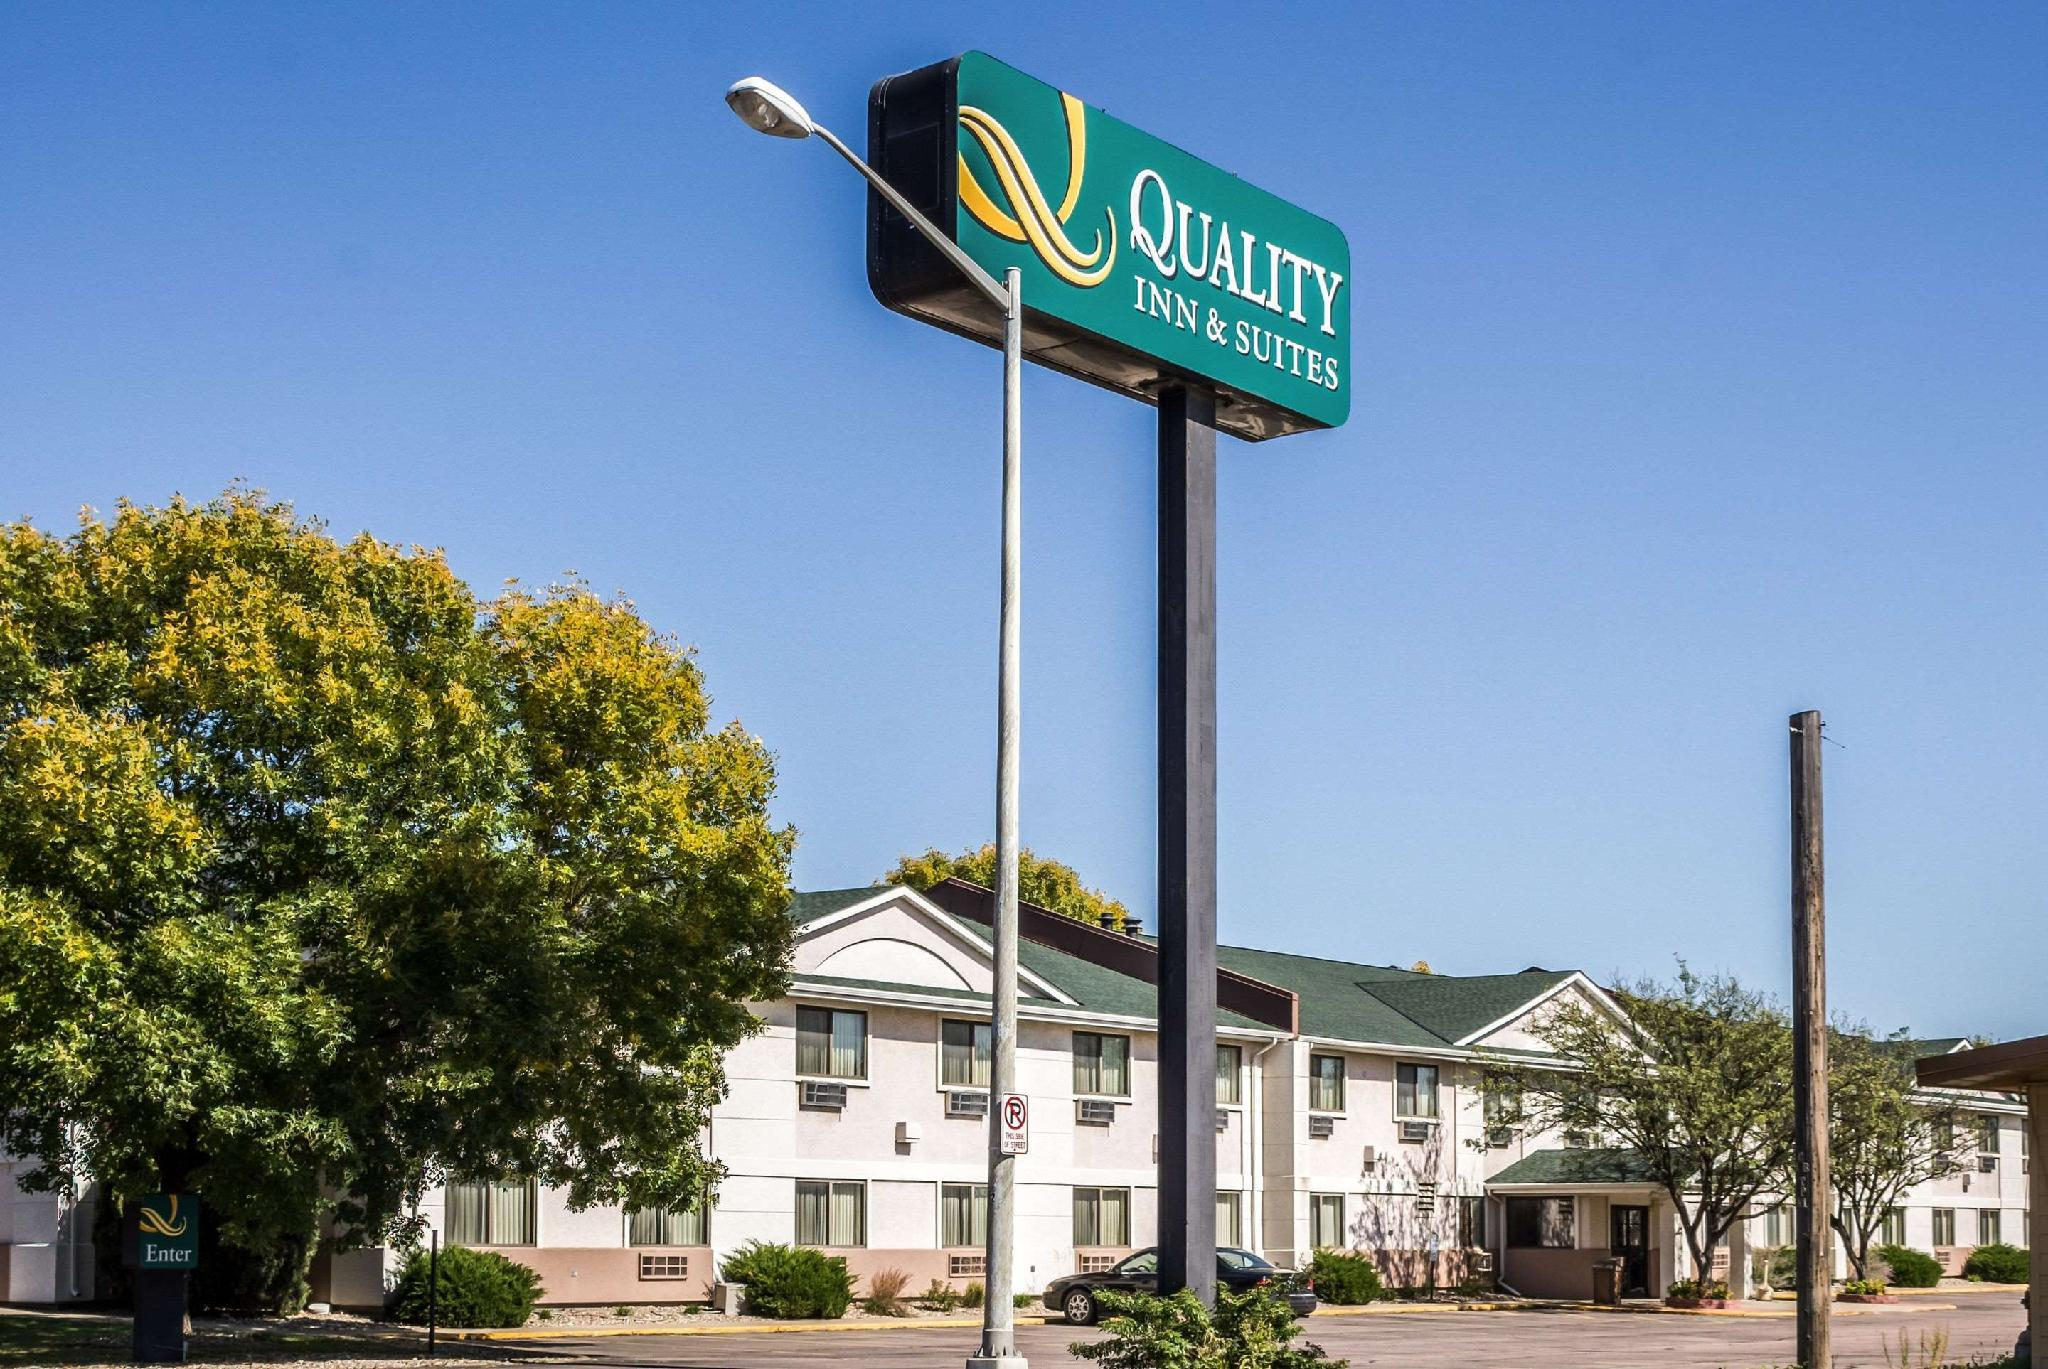 Hotels Reviews: Quality Inn & Suites South Sioux Falls – Picture, Rates and Deals